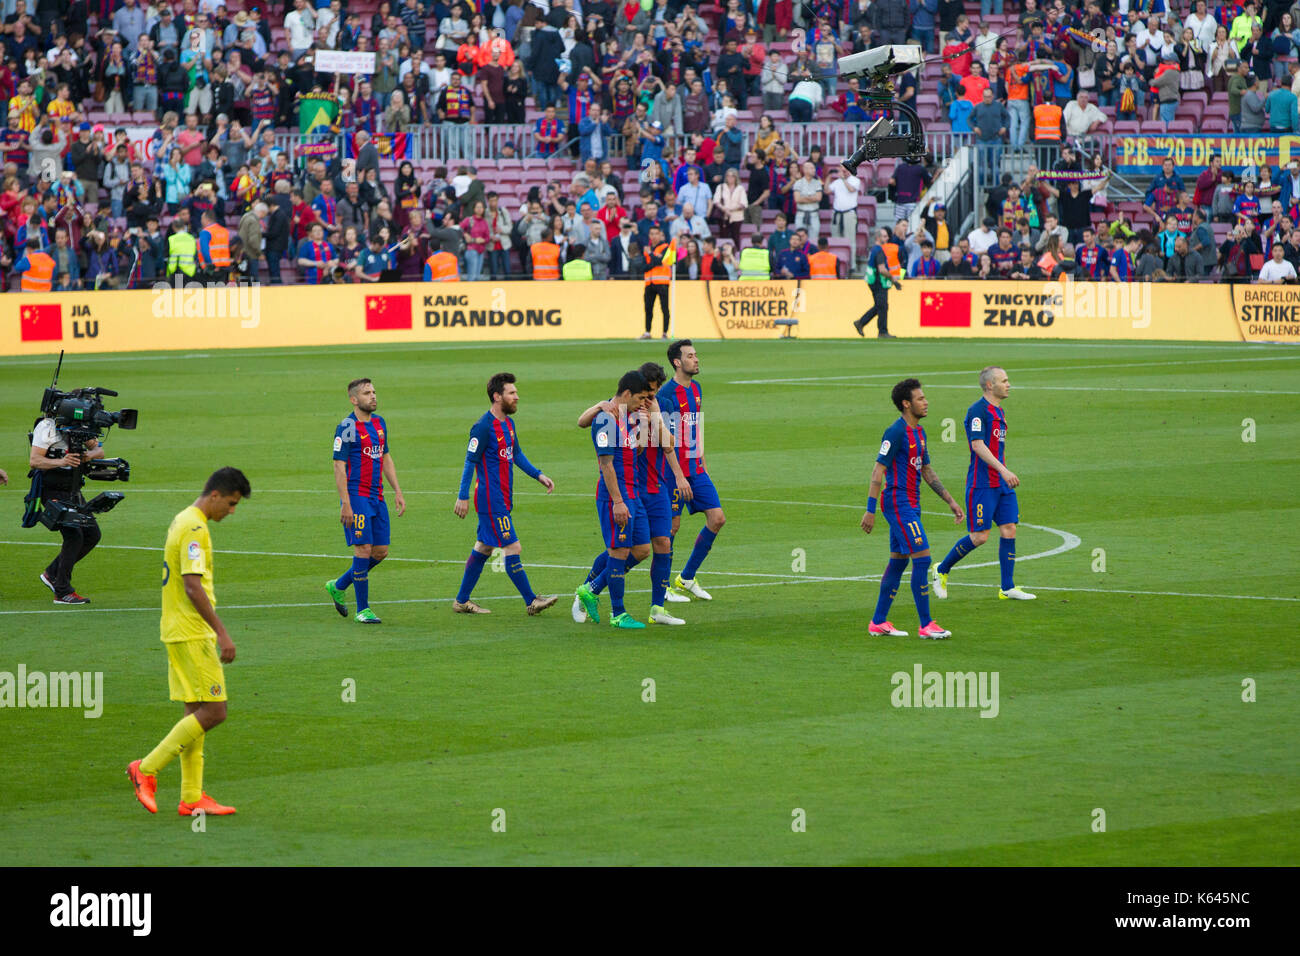 6/5/17 Barcelona v Villarreal football league match at the Camp Nou stadium, Barcelona. Players leaving pitch after match. - Stock Image